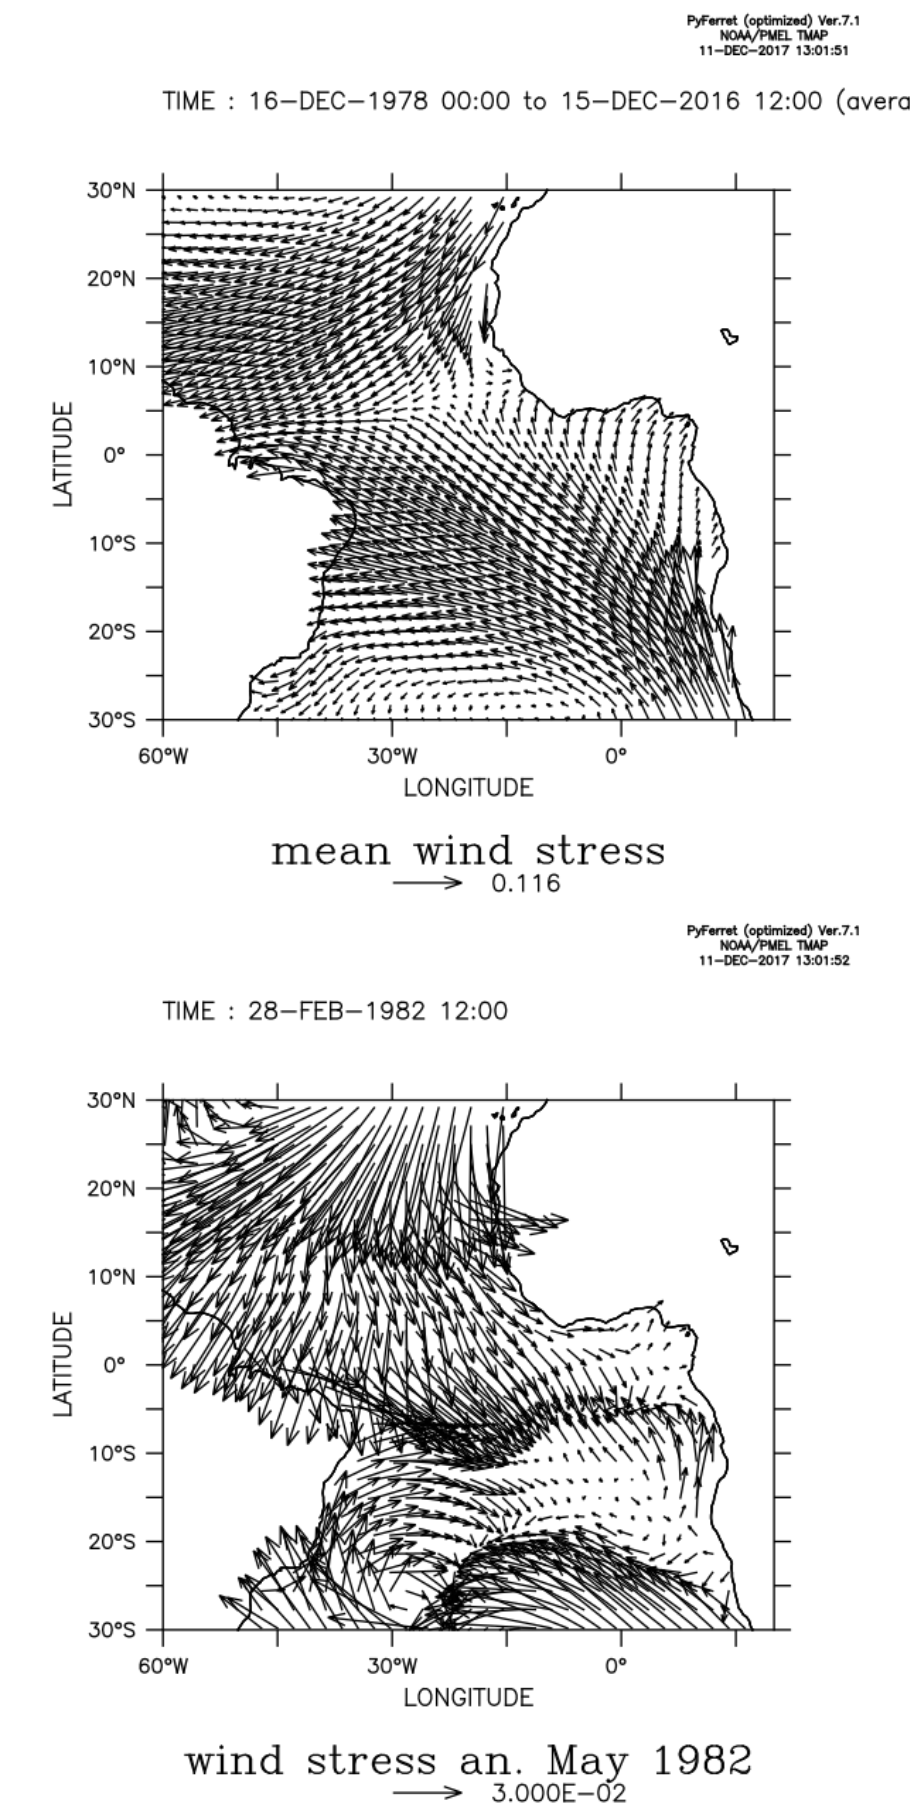 example_08_ERAIN_SFC12_MM_deseasoned_Tropical_Atlantic_wind_stress.png